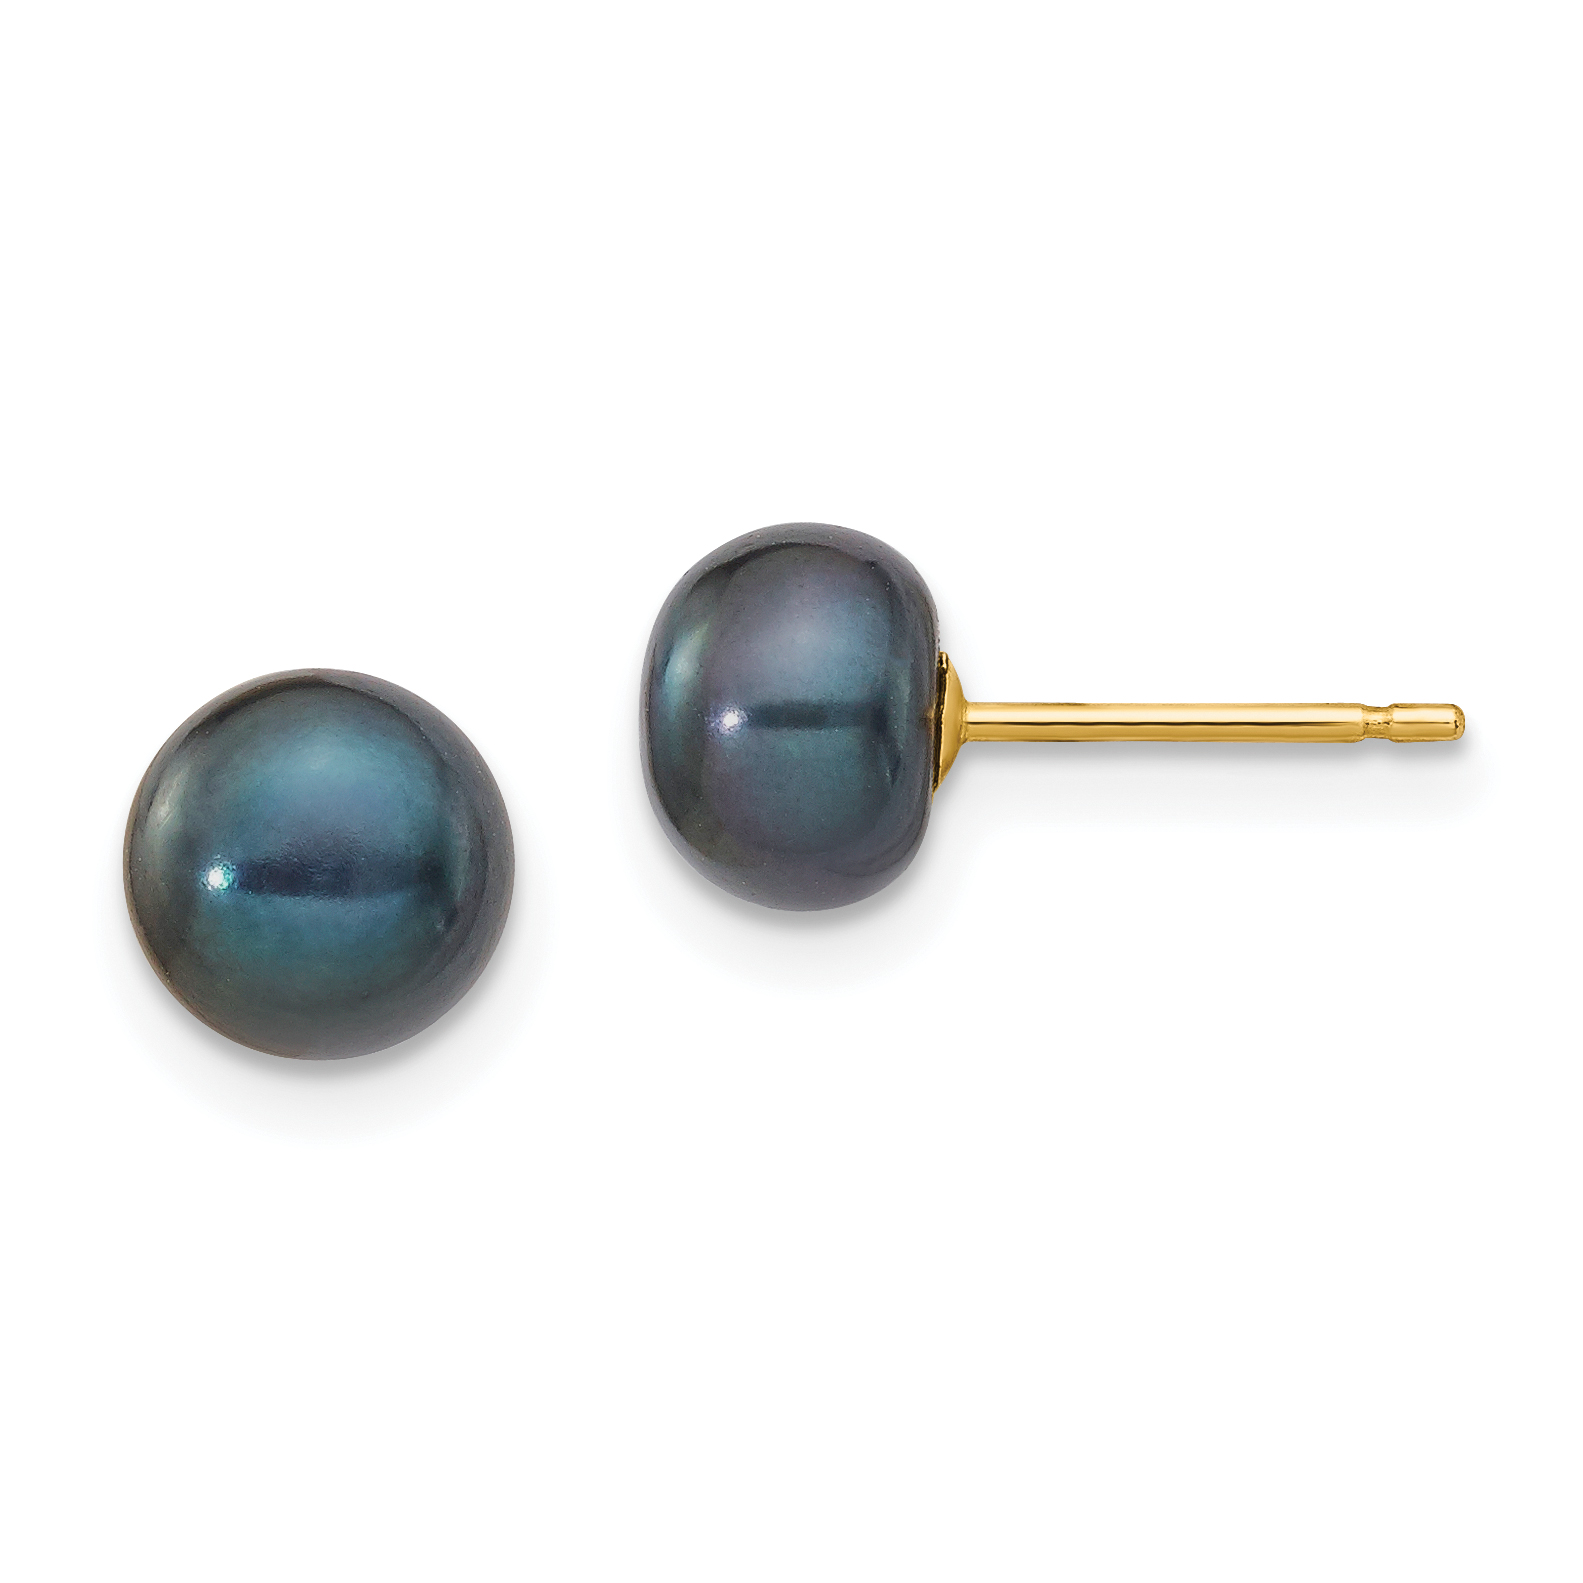 14k 6 7mm Black On Fw Cultured Pearl Stud Earrings Weight Lengh